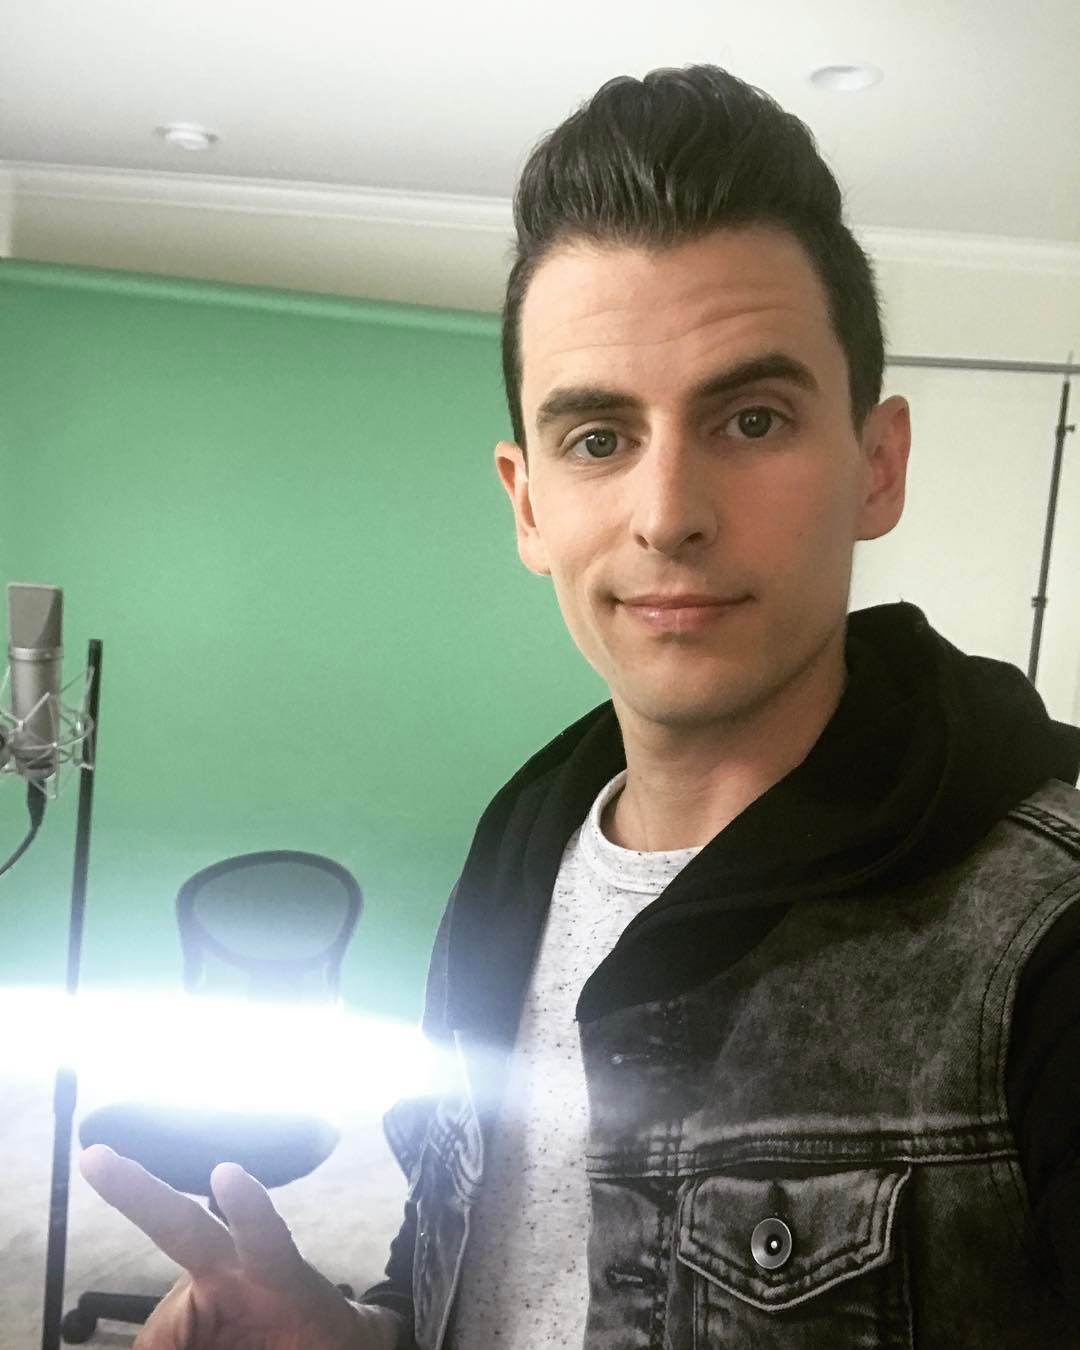 Mike Tompkins Instagram username